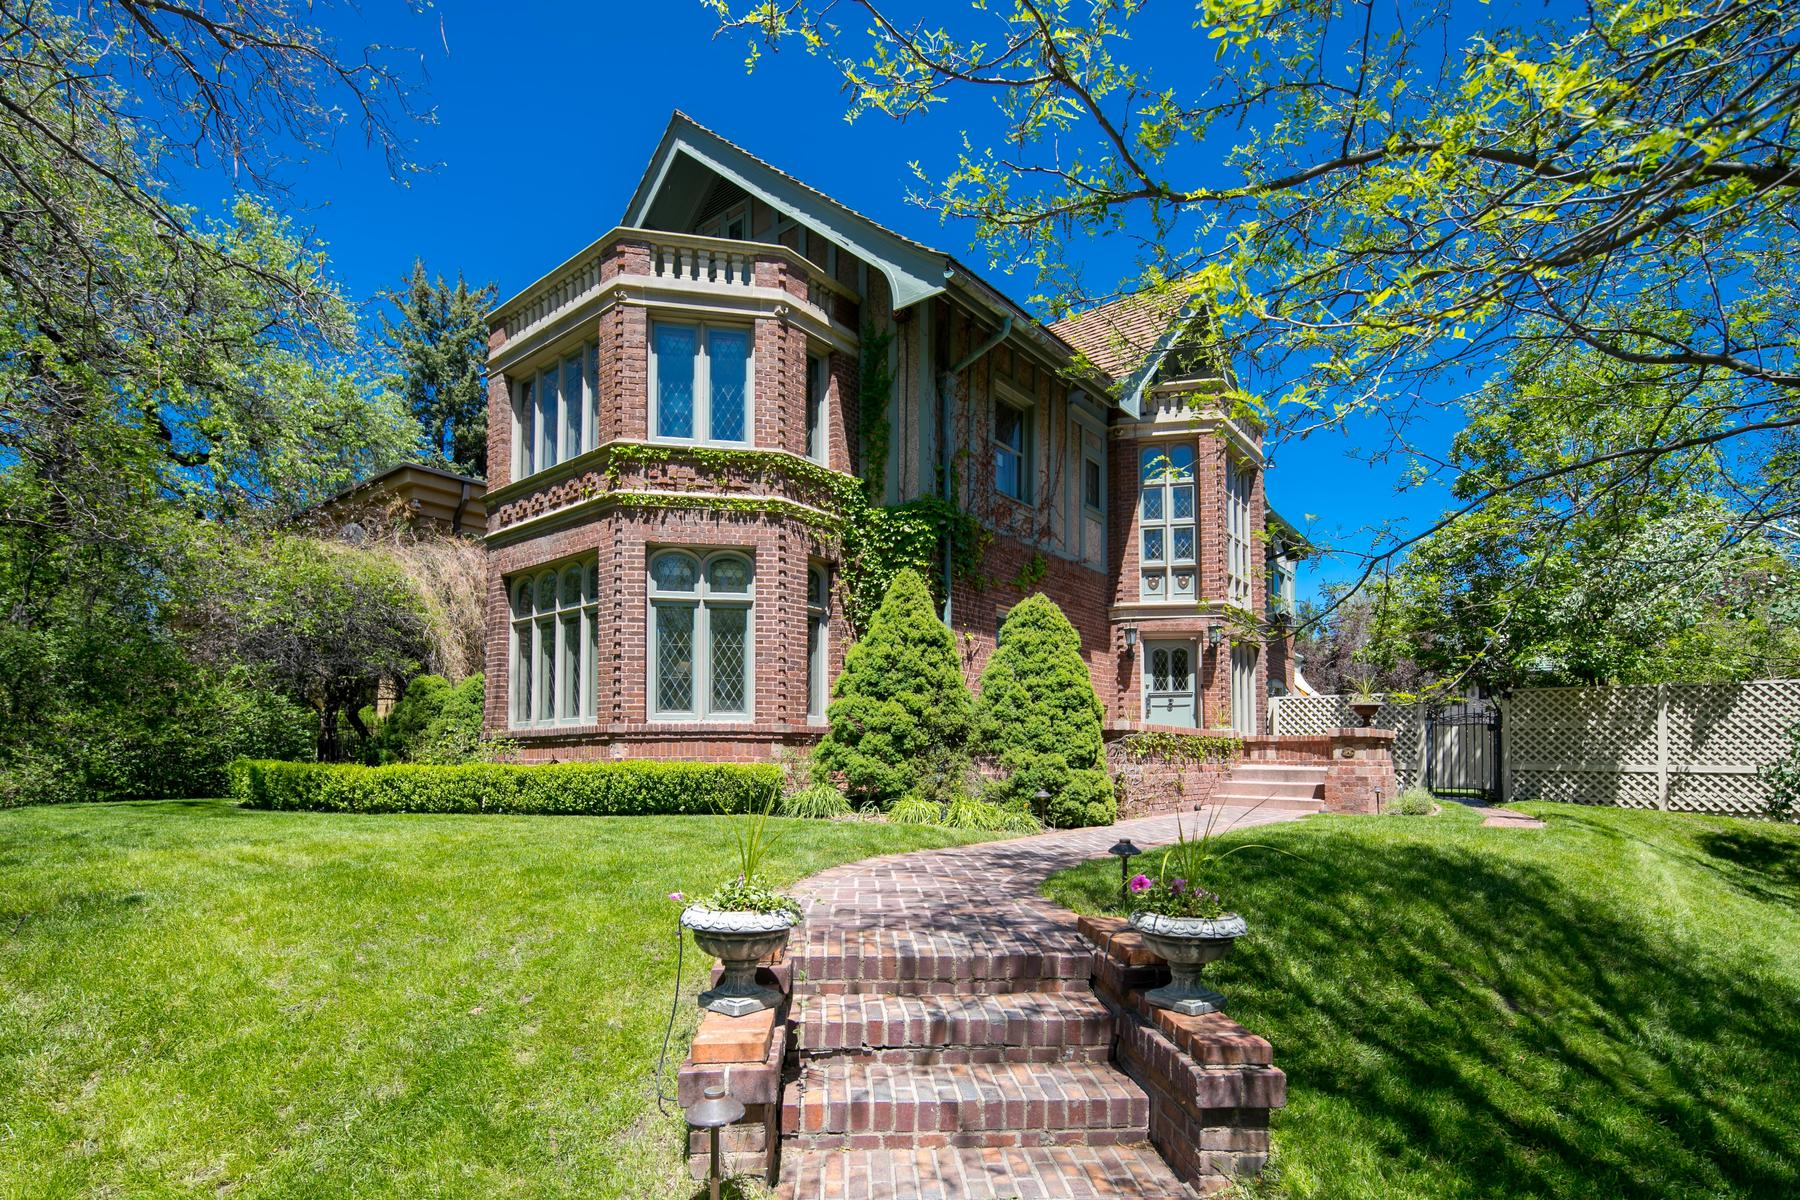 Single Family Homes for Sale at Storybook Tudor Combines Old World Elegance & European Renovation 120 N Humboldt Street Denver, Colorado 80218 United States